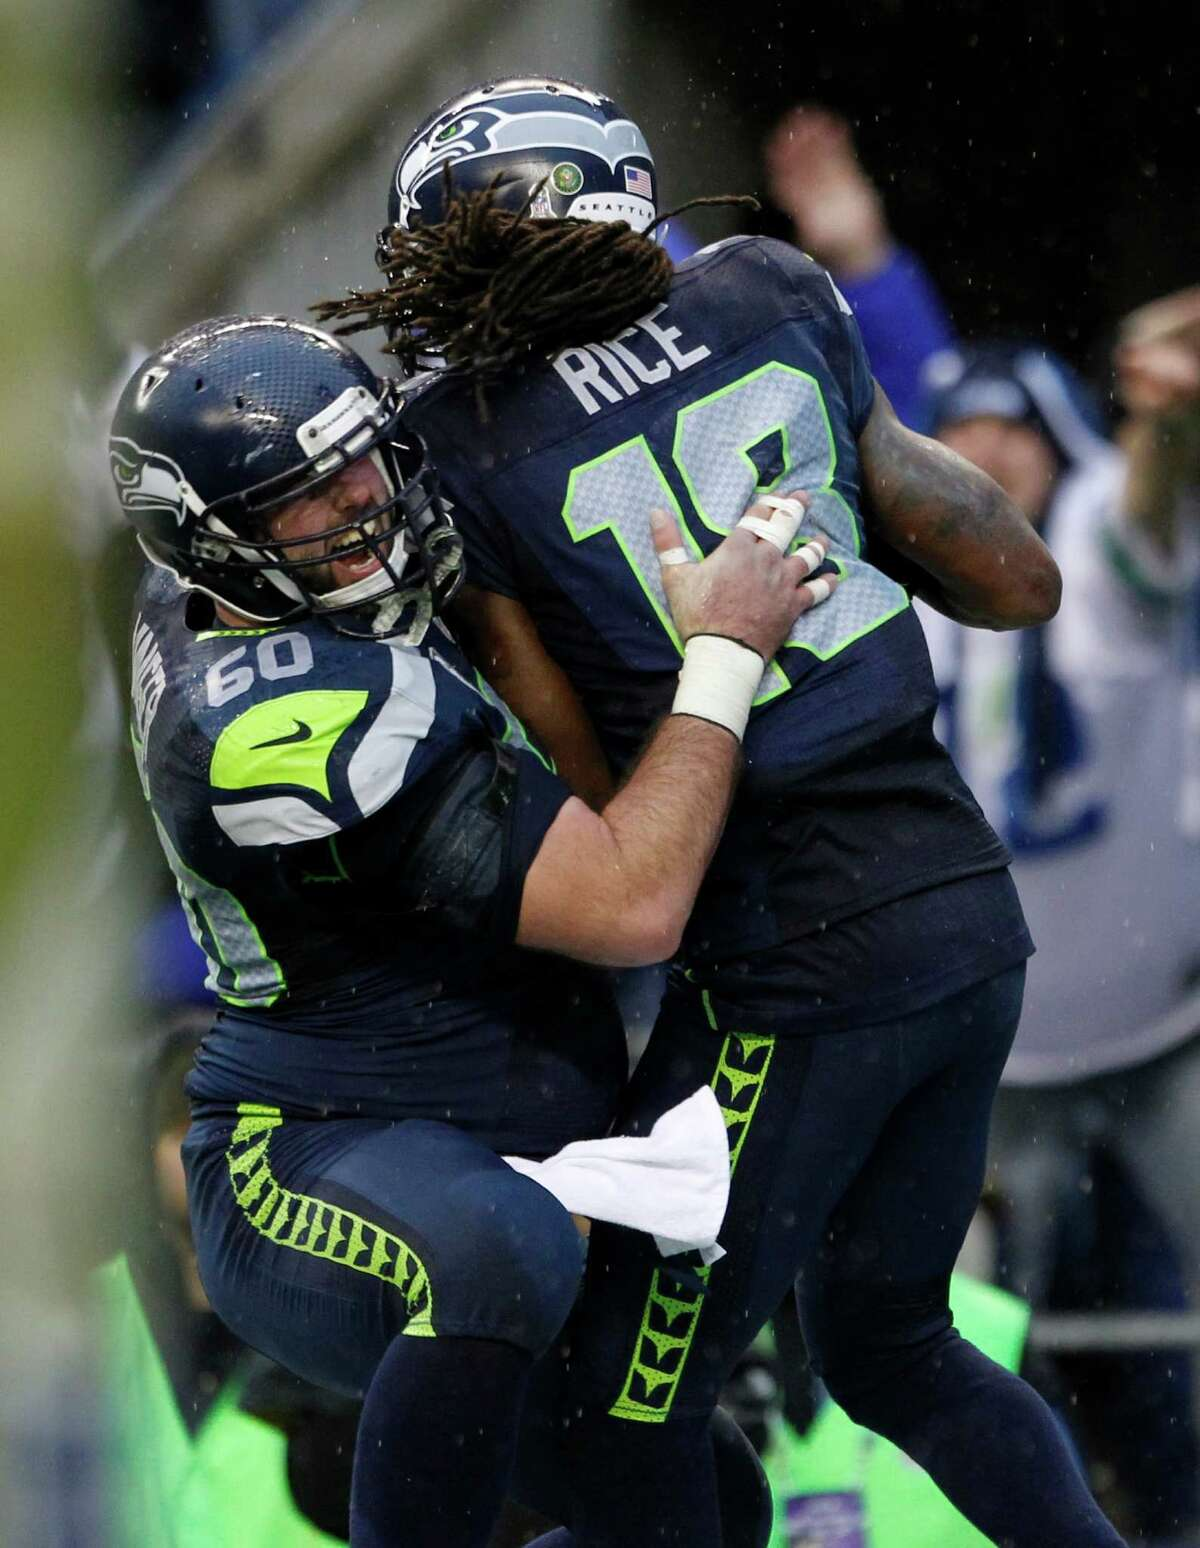 Seattle Seahawks' Sidney Rice (18) celebrates his touchdown with teammate Max Unger (60) during the second half of an NFL football game against the New York Jets, Sunday, Nov. 11, 2012, in Seattle.